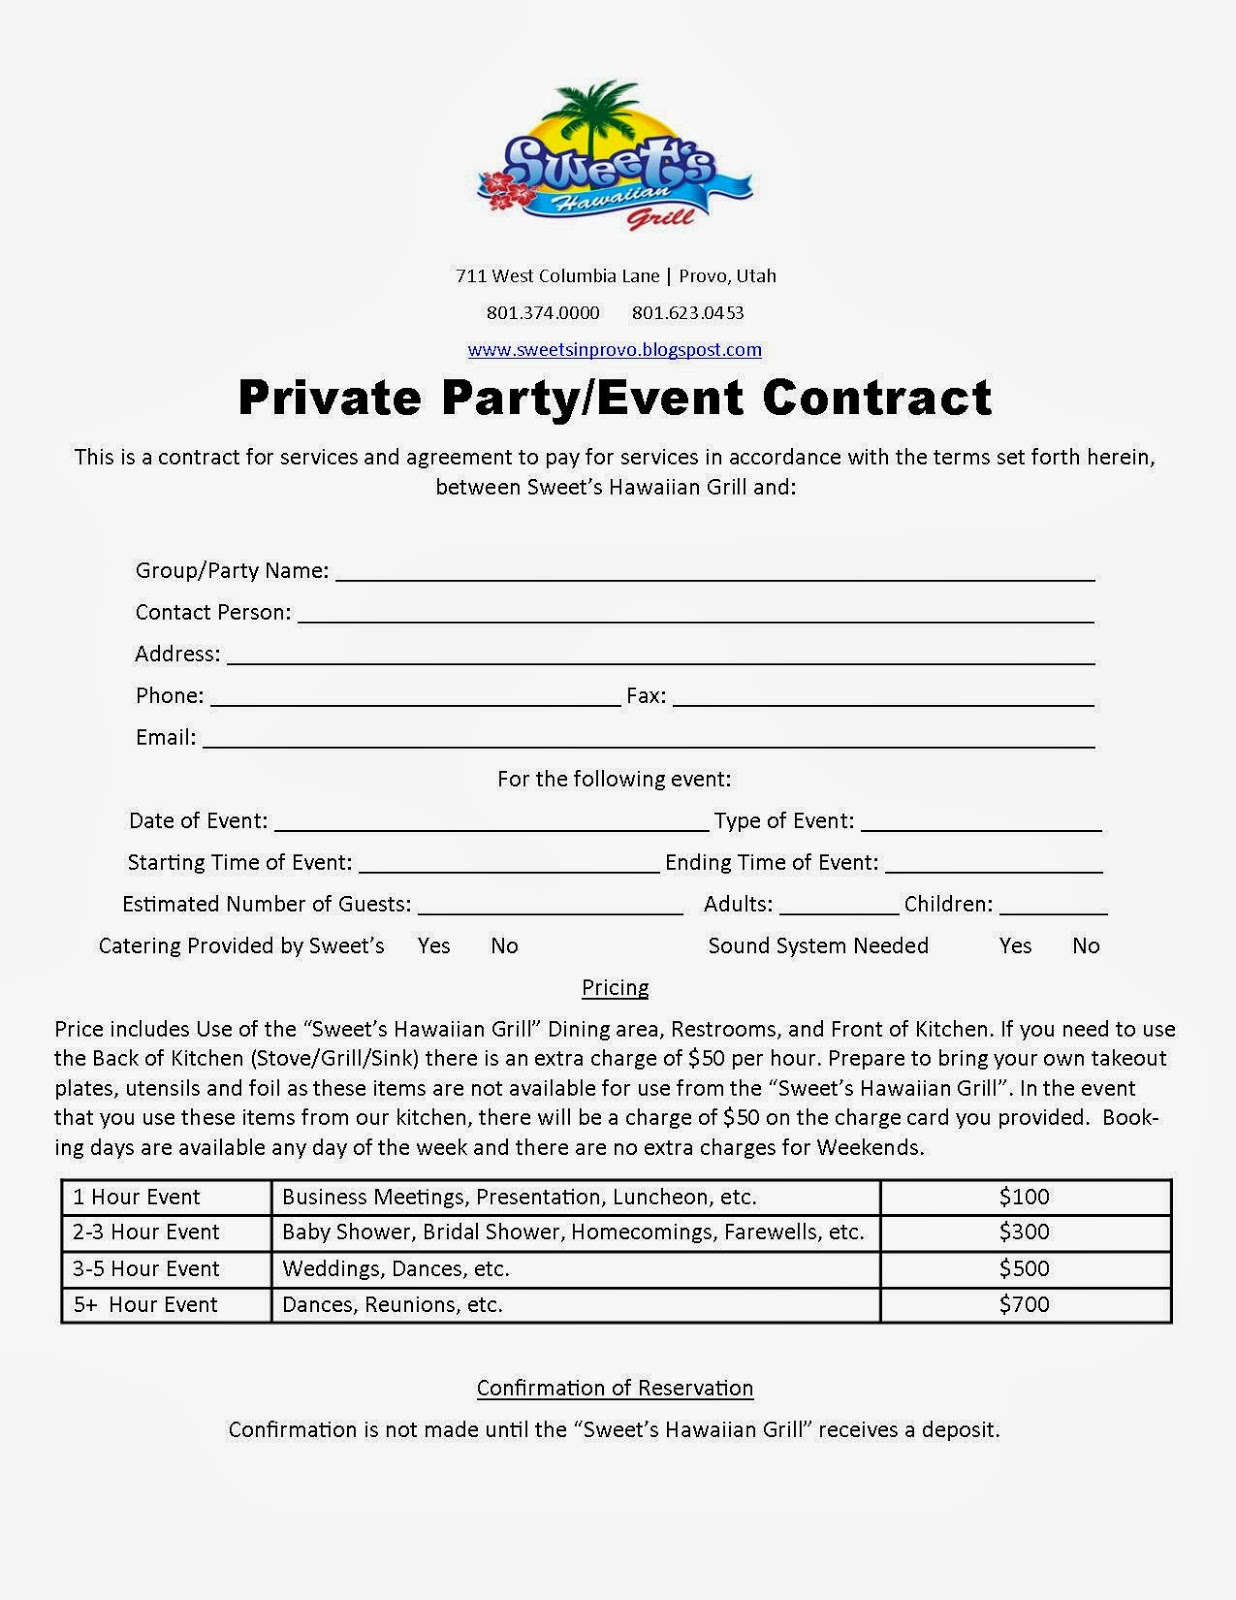 event space rental contract template - welcome to our sweet 39 s blog holiday party time is coming